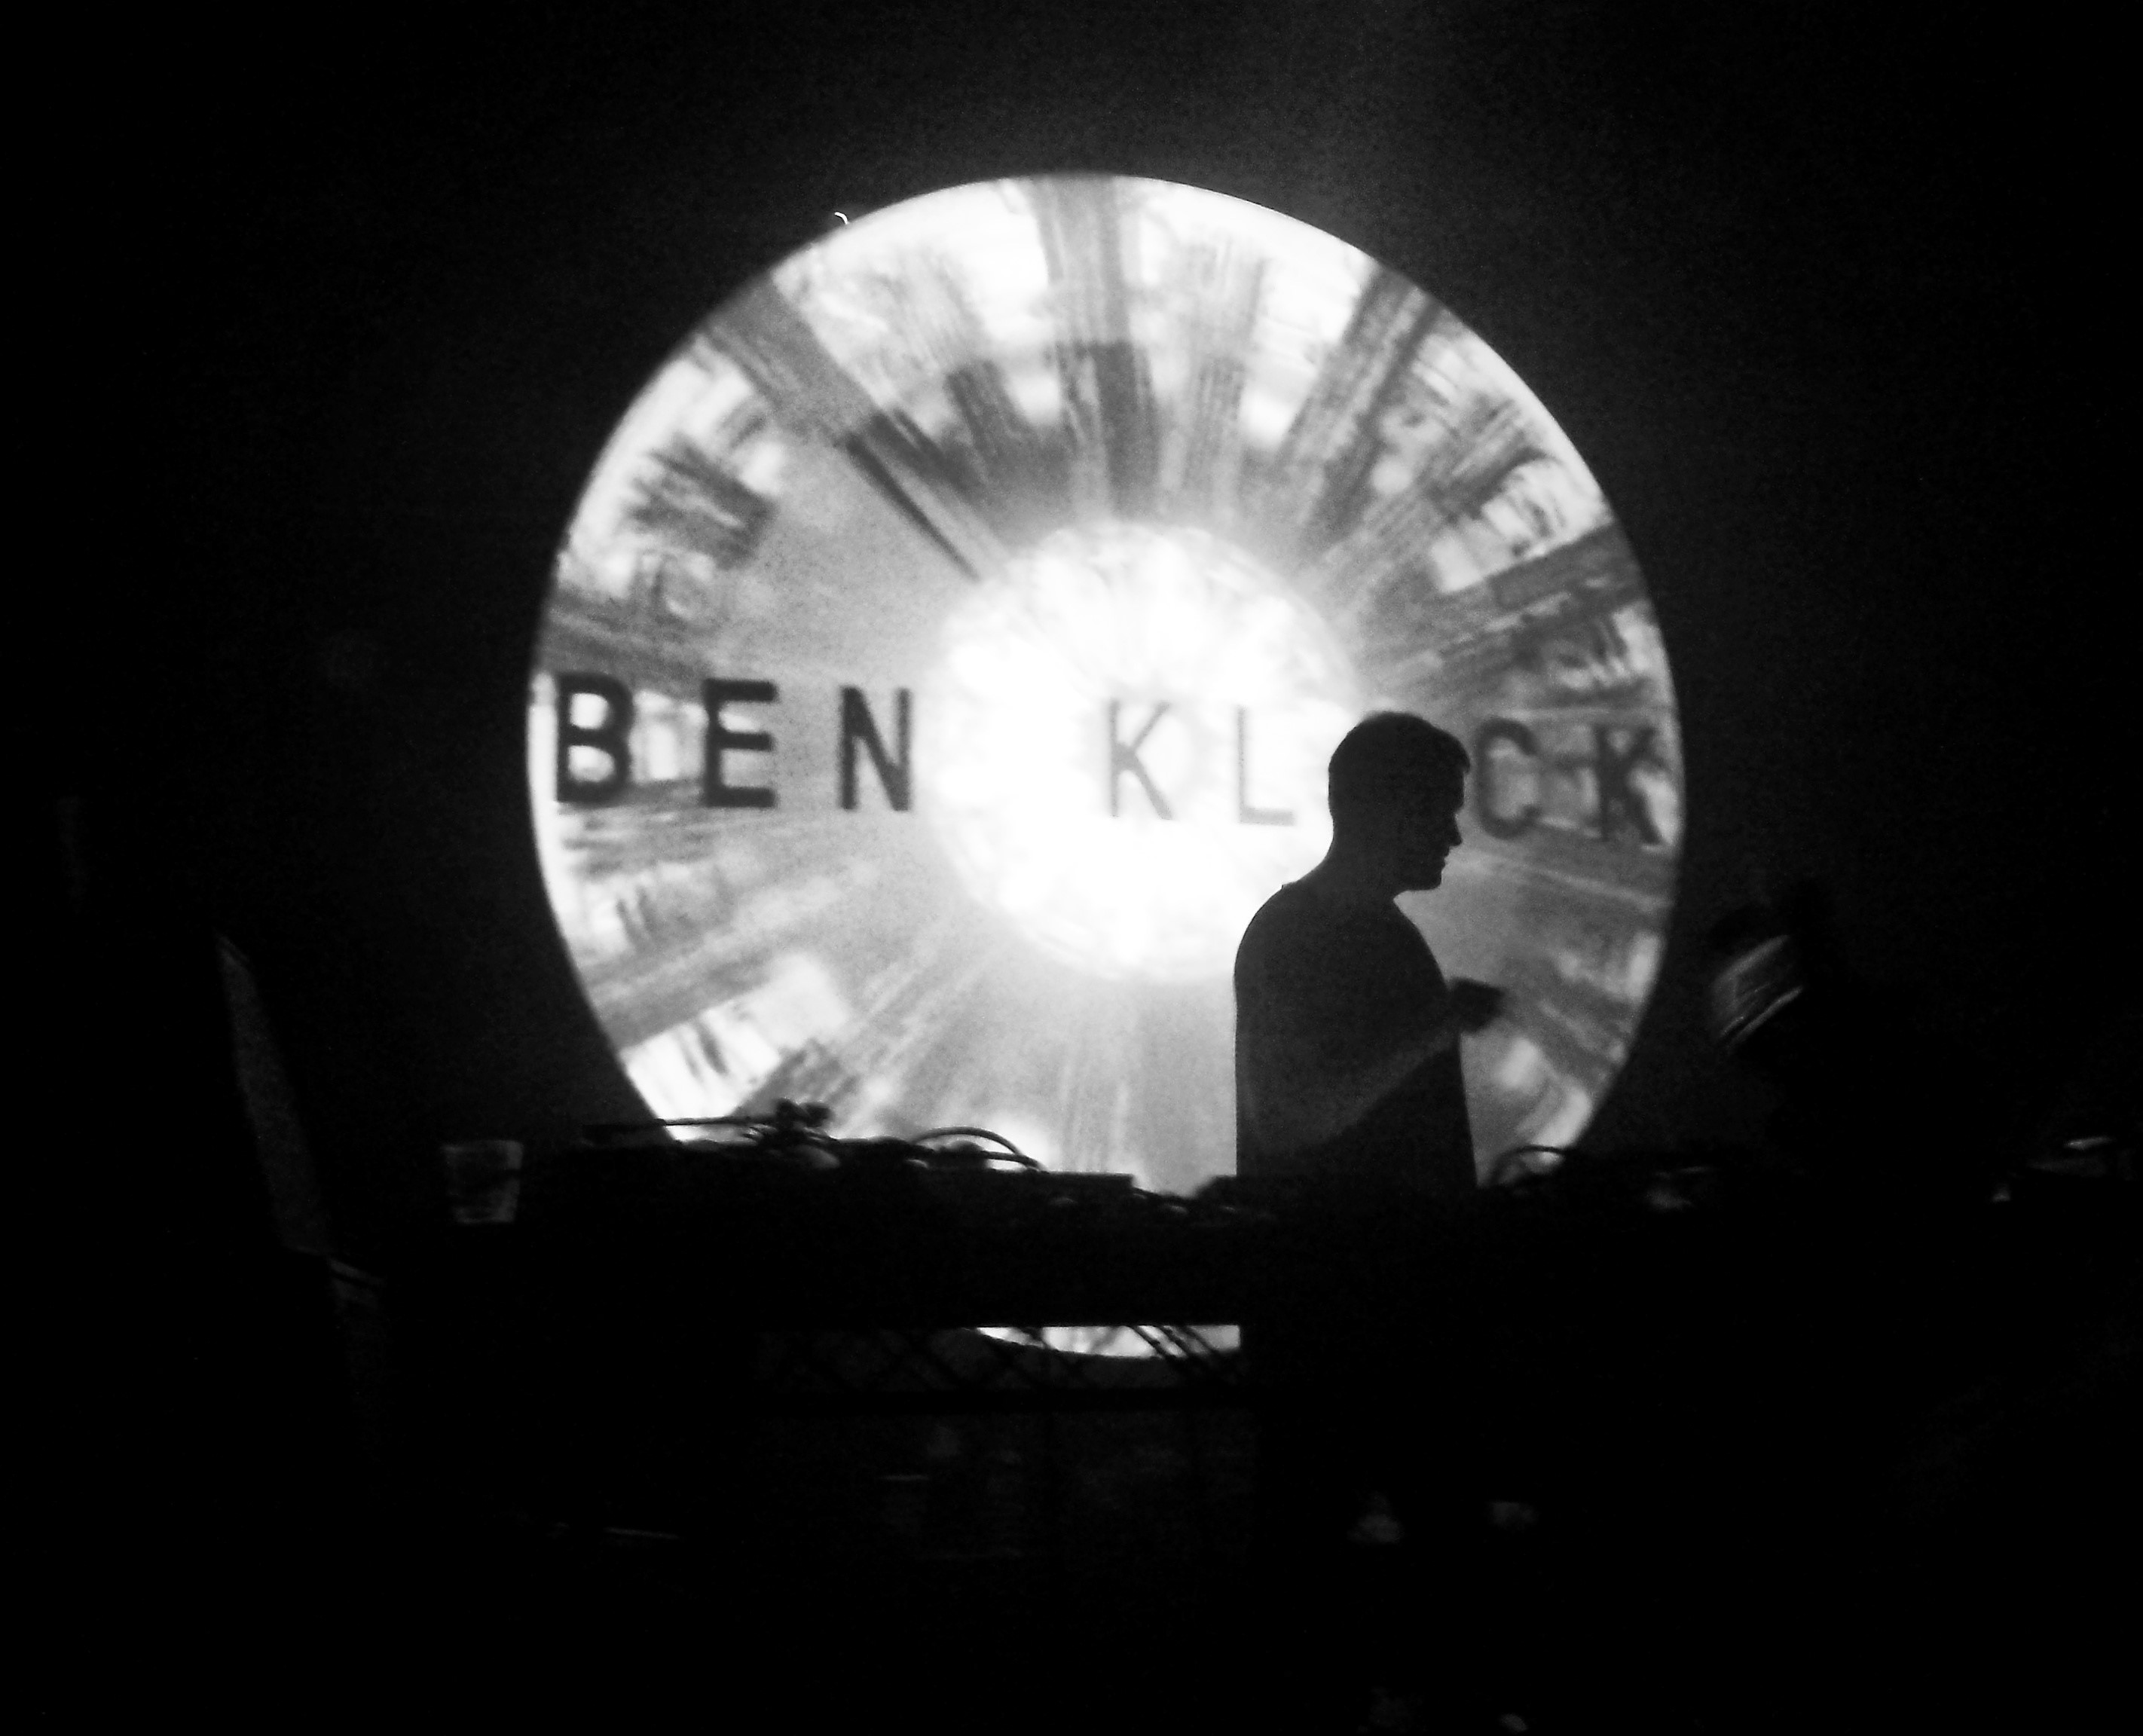 Ben Klock – District 8